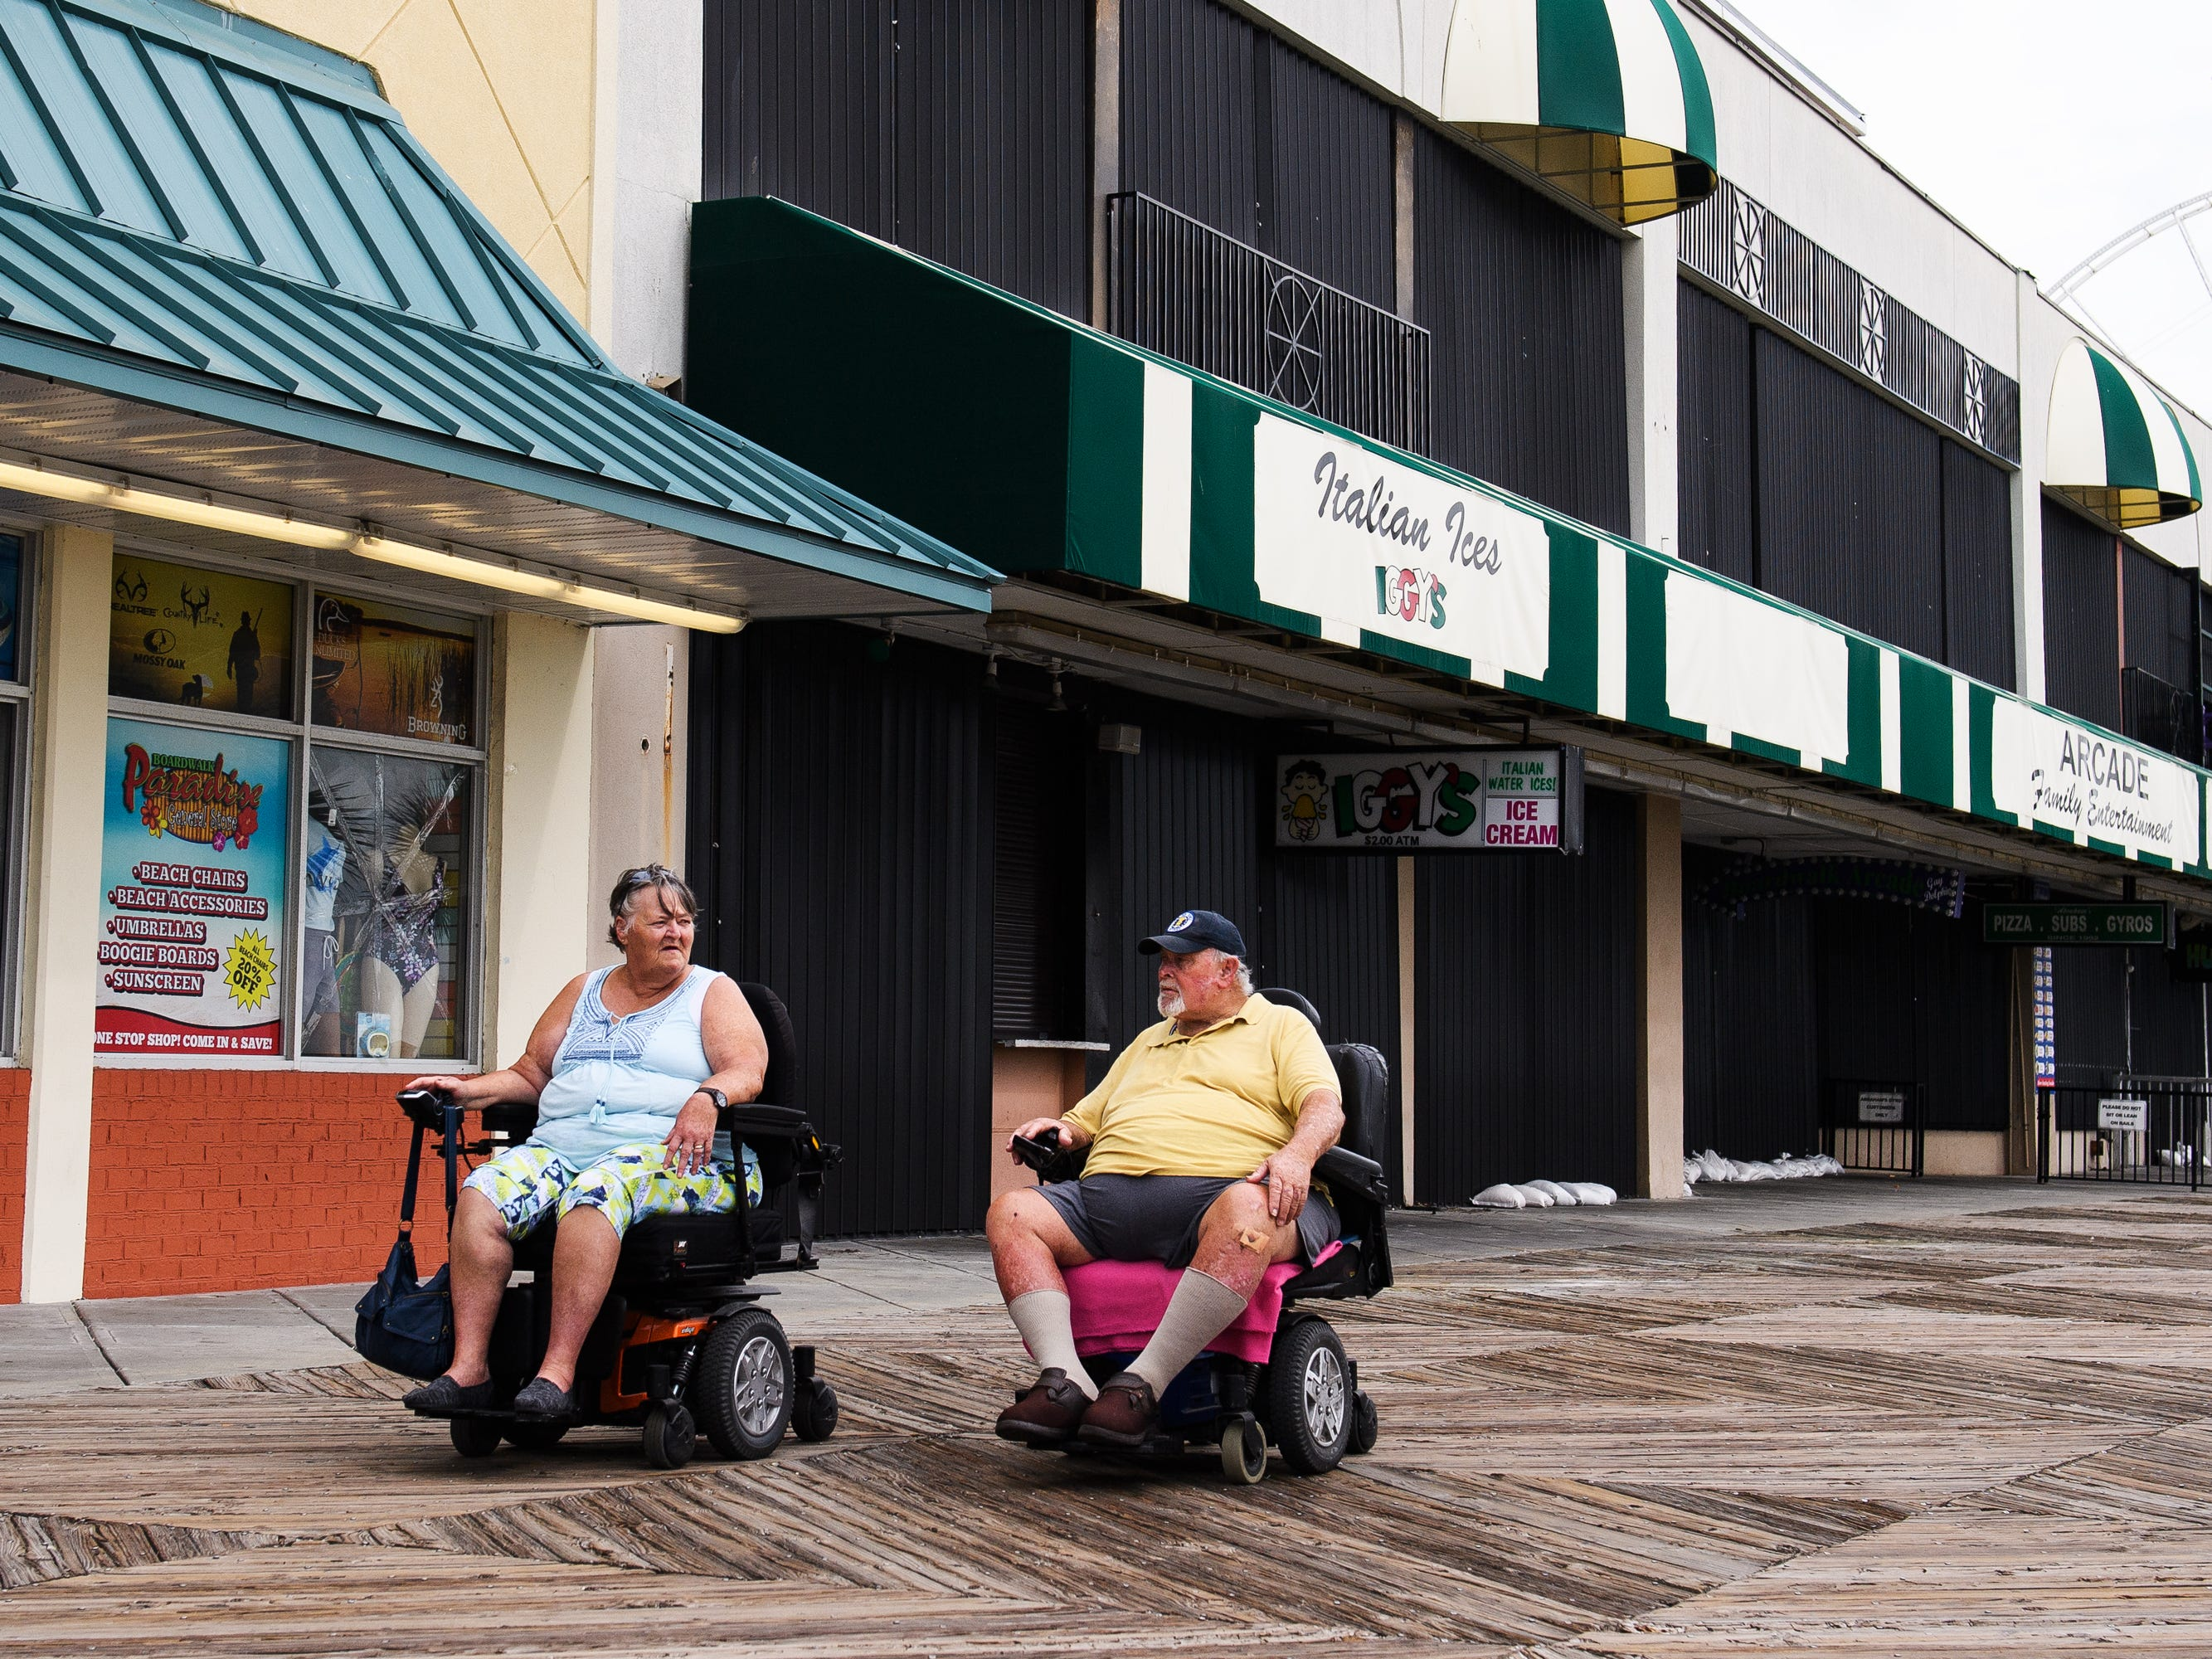 Randy and Carolyn Hardee ride down the Myrtle Beach Boardwalk and Promenade on Thursday, Sept. 13, 2018. Randy said they would have left Myrtle Beach if Hurricane Florence was a category 4, but chose to stay after it had been downgraded.